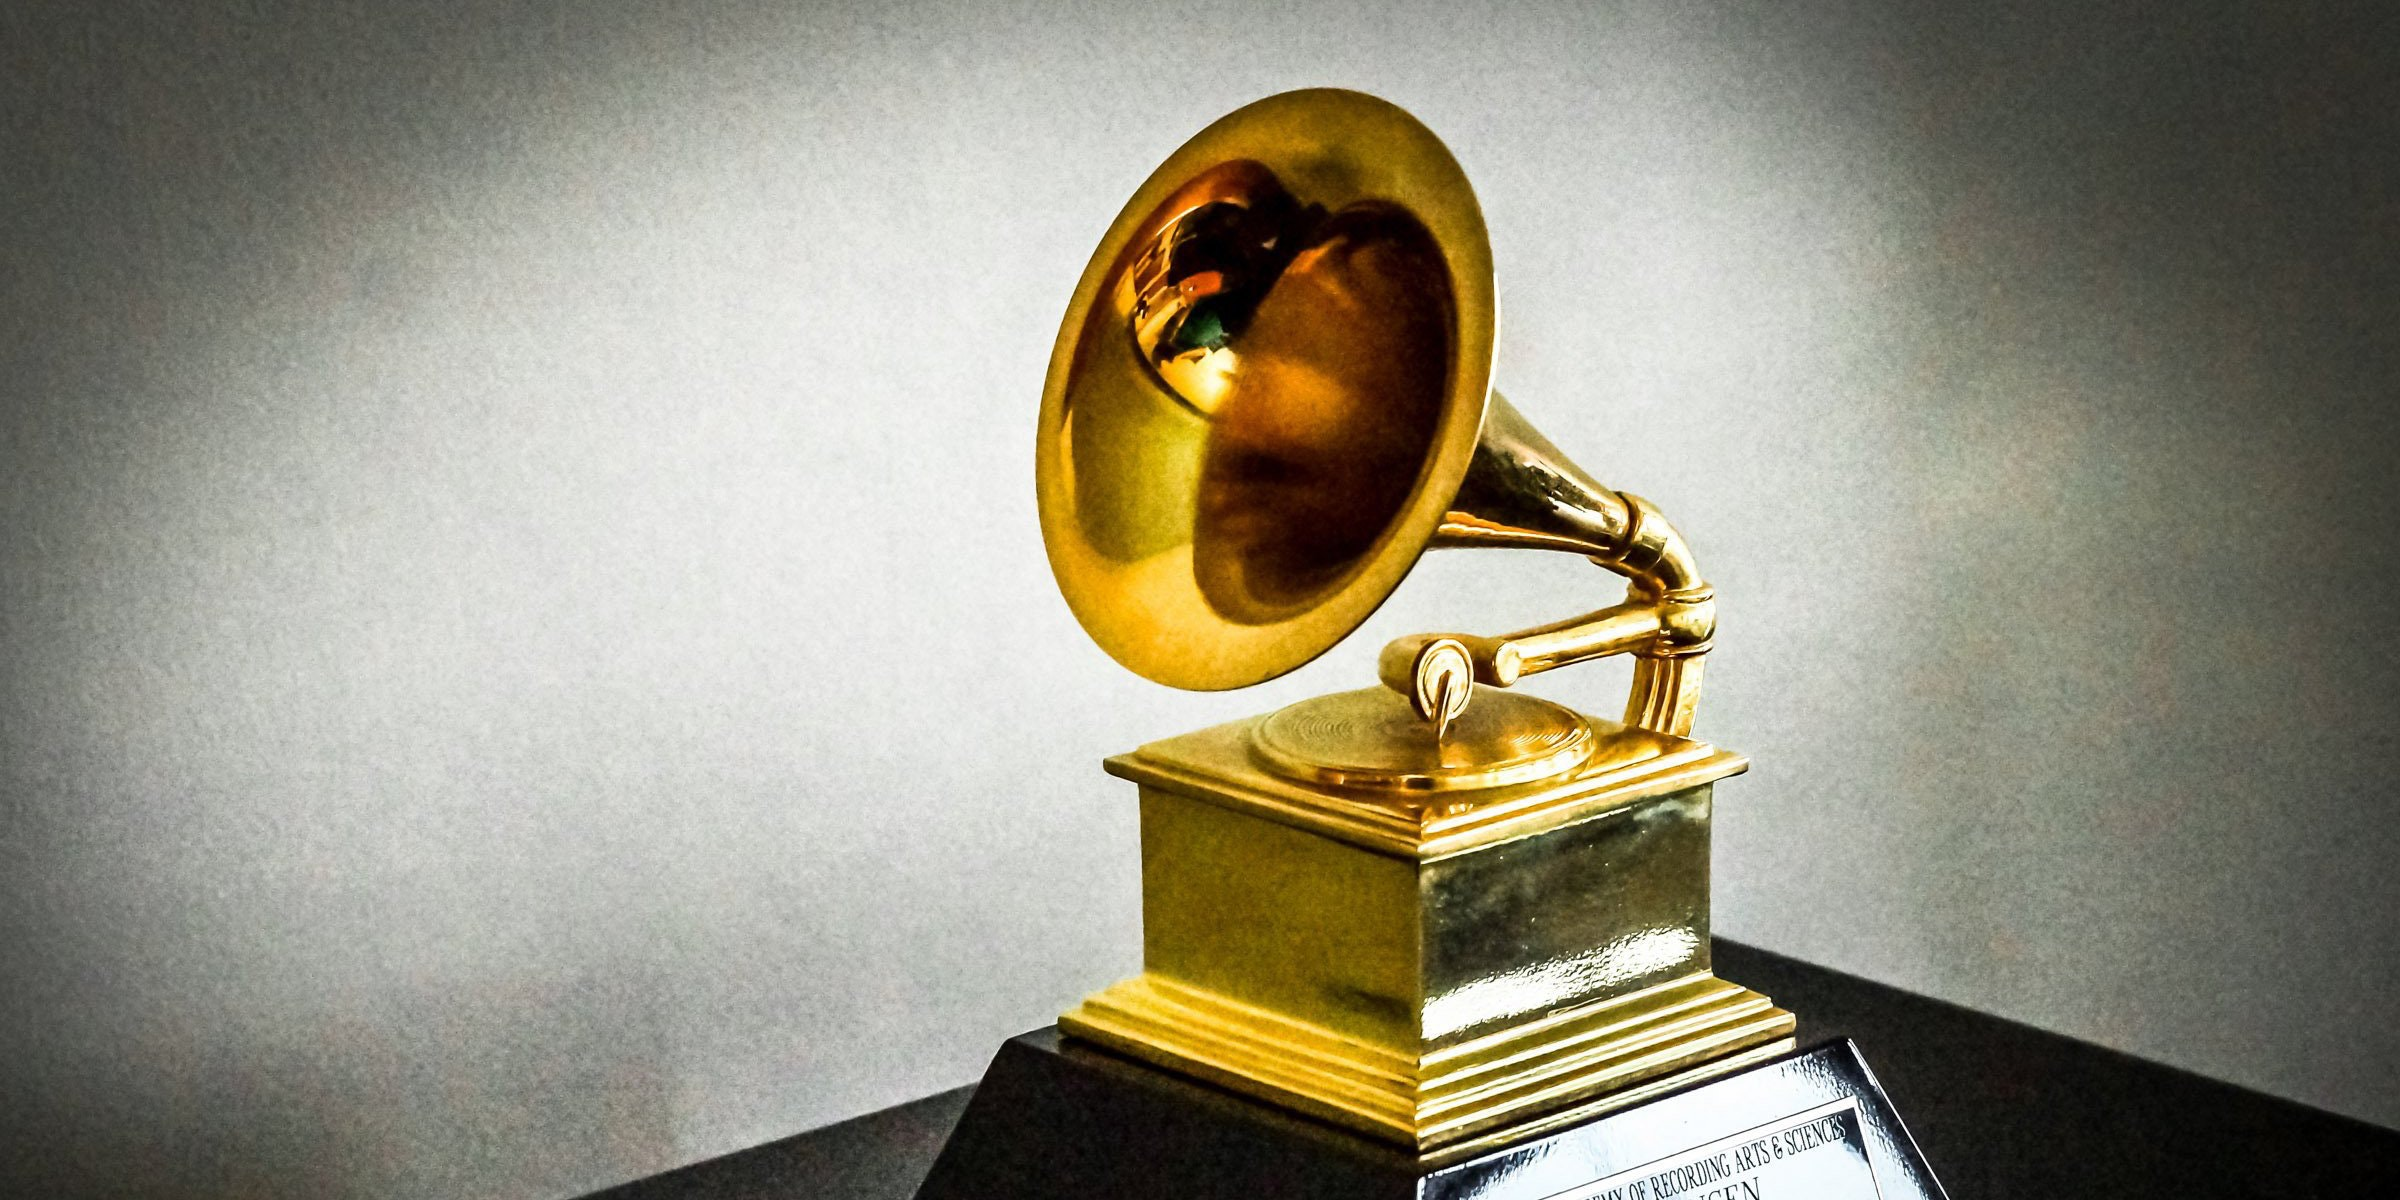 Grammy Award: The 10 Best Grammy Award-Winning Album Covers